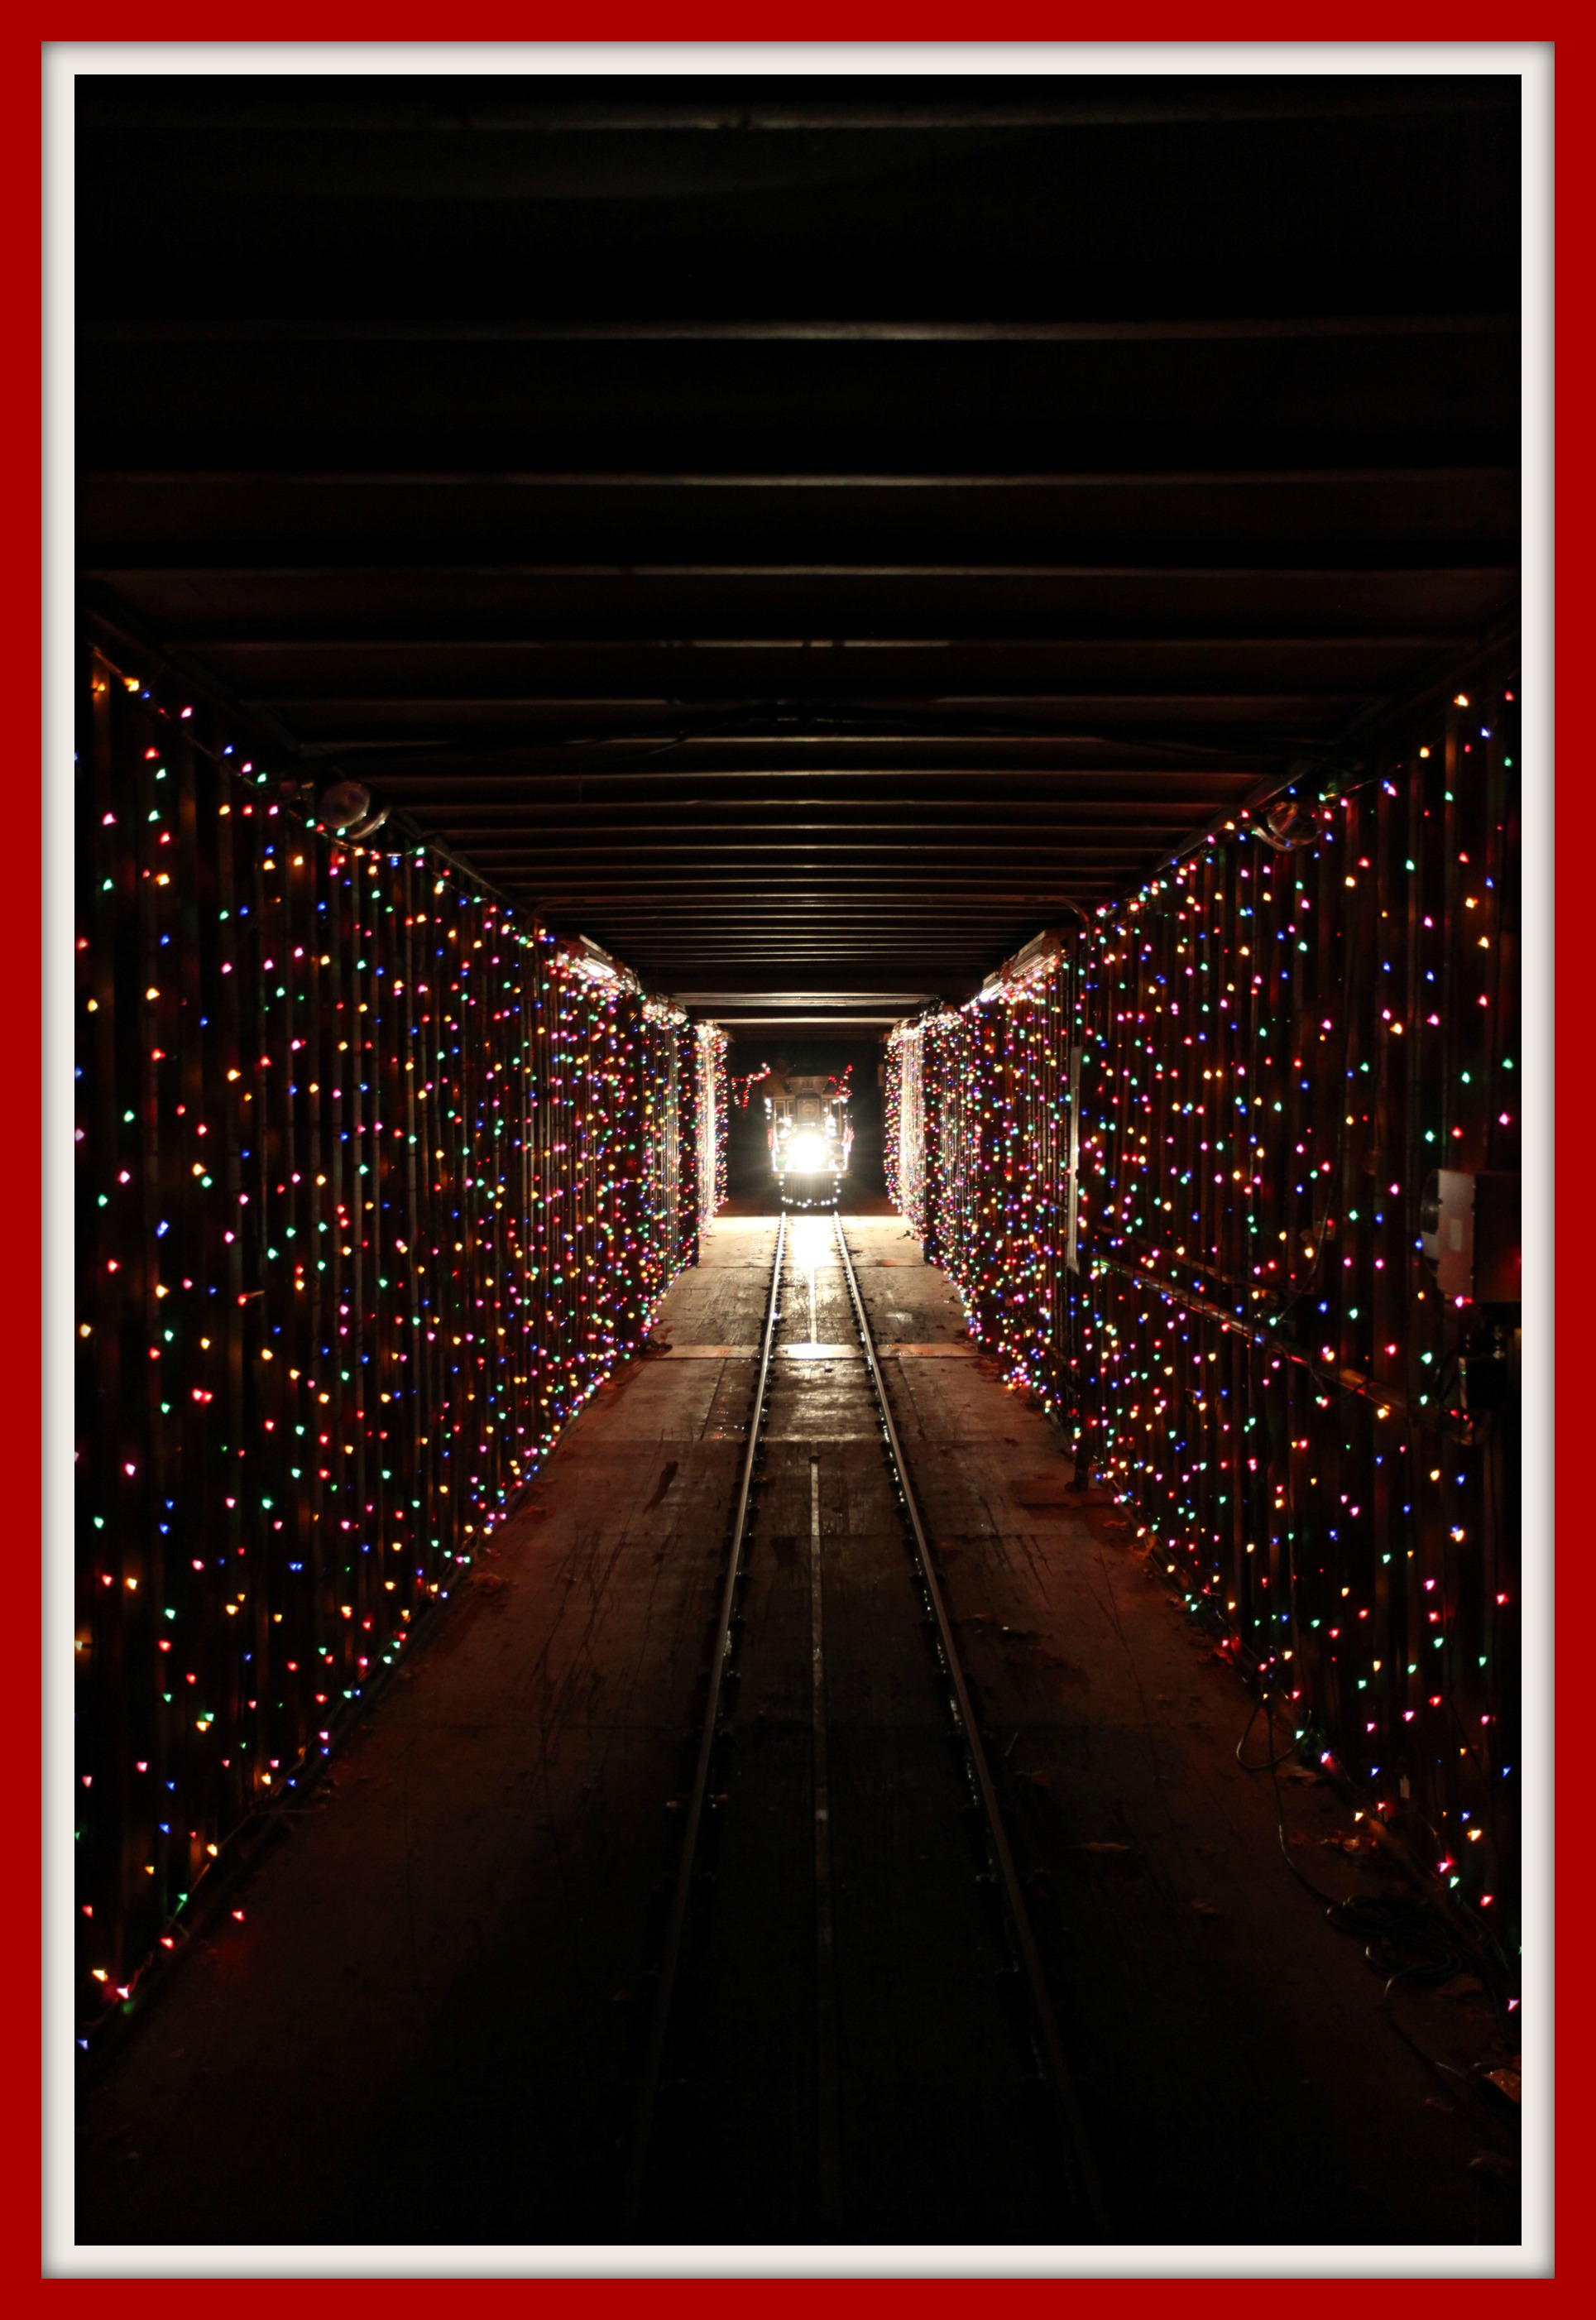 Train In The Tunnel Of